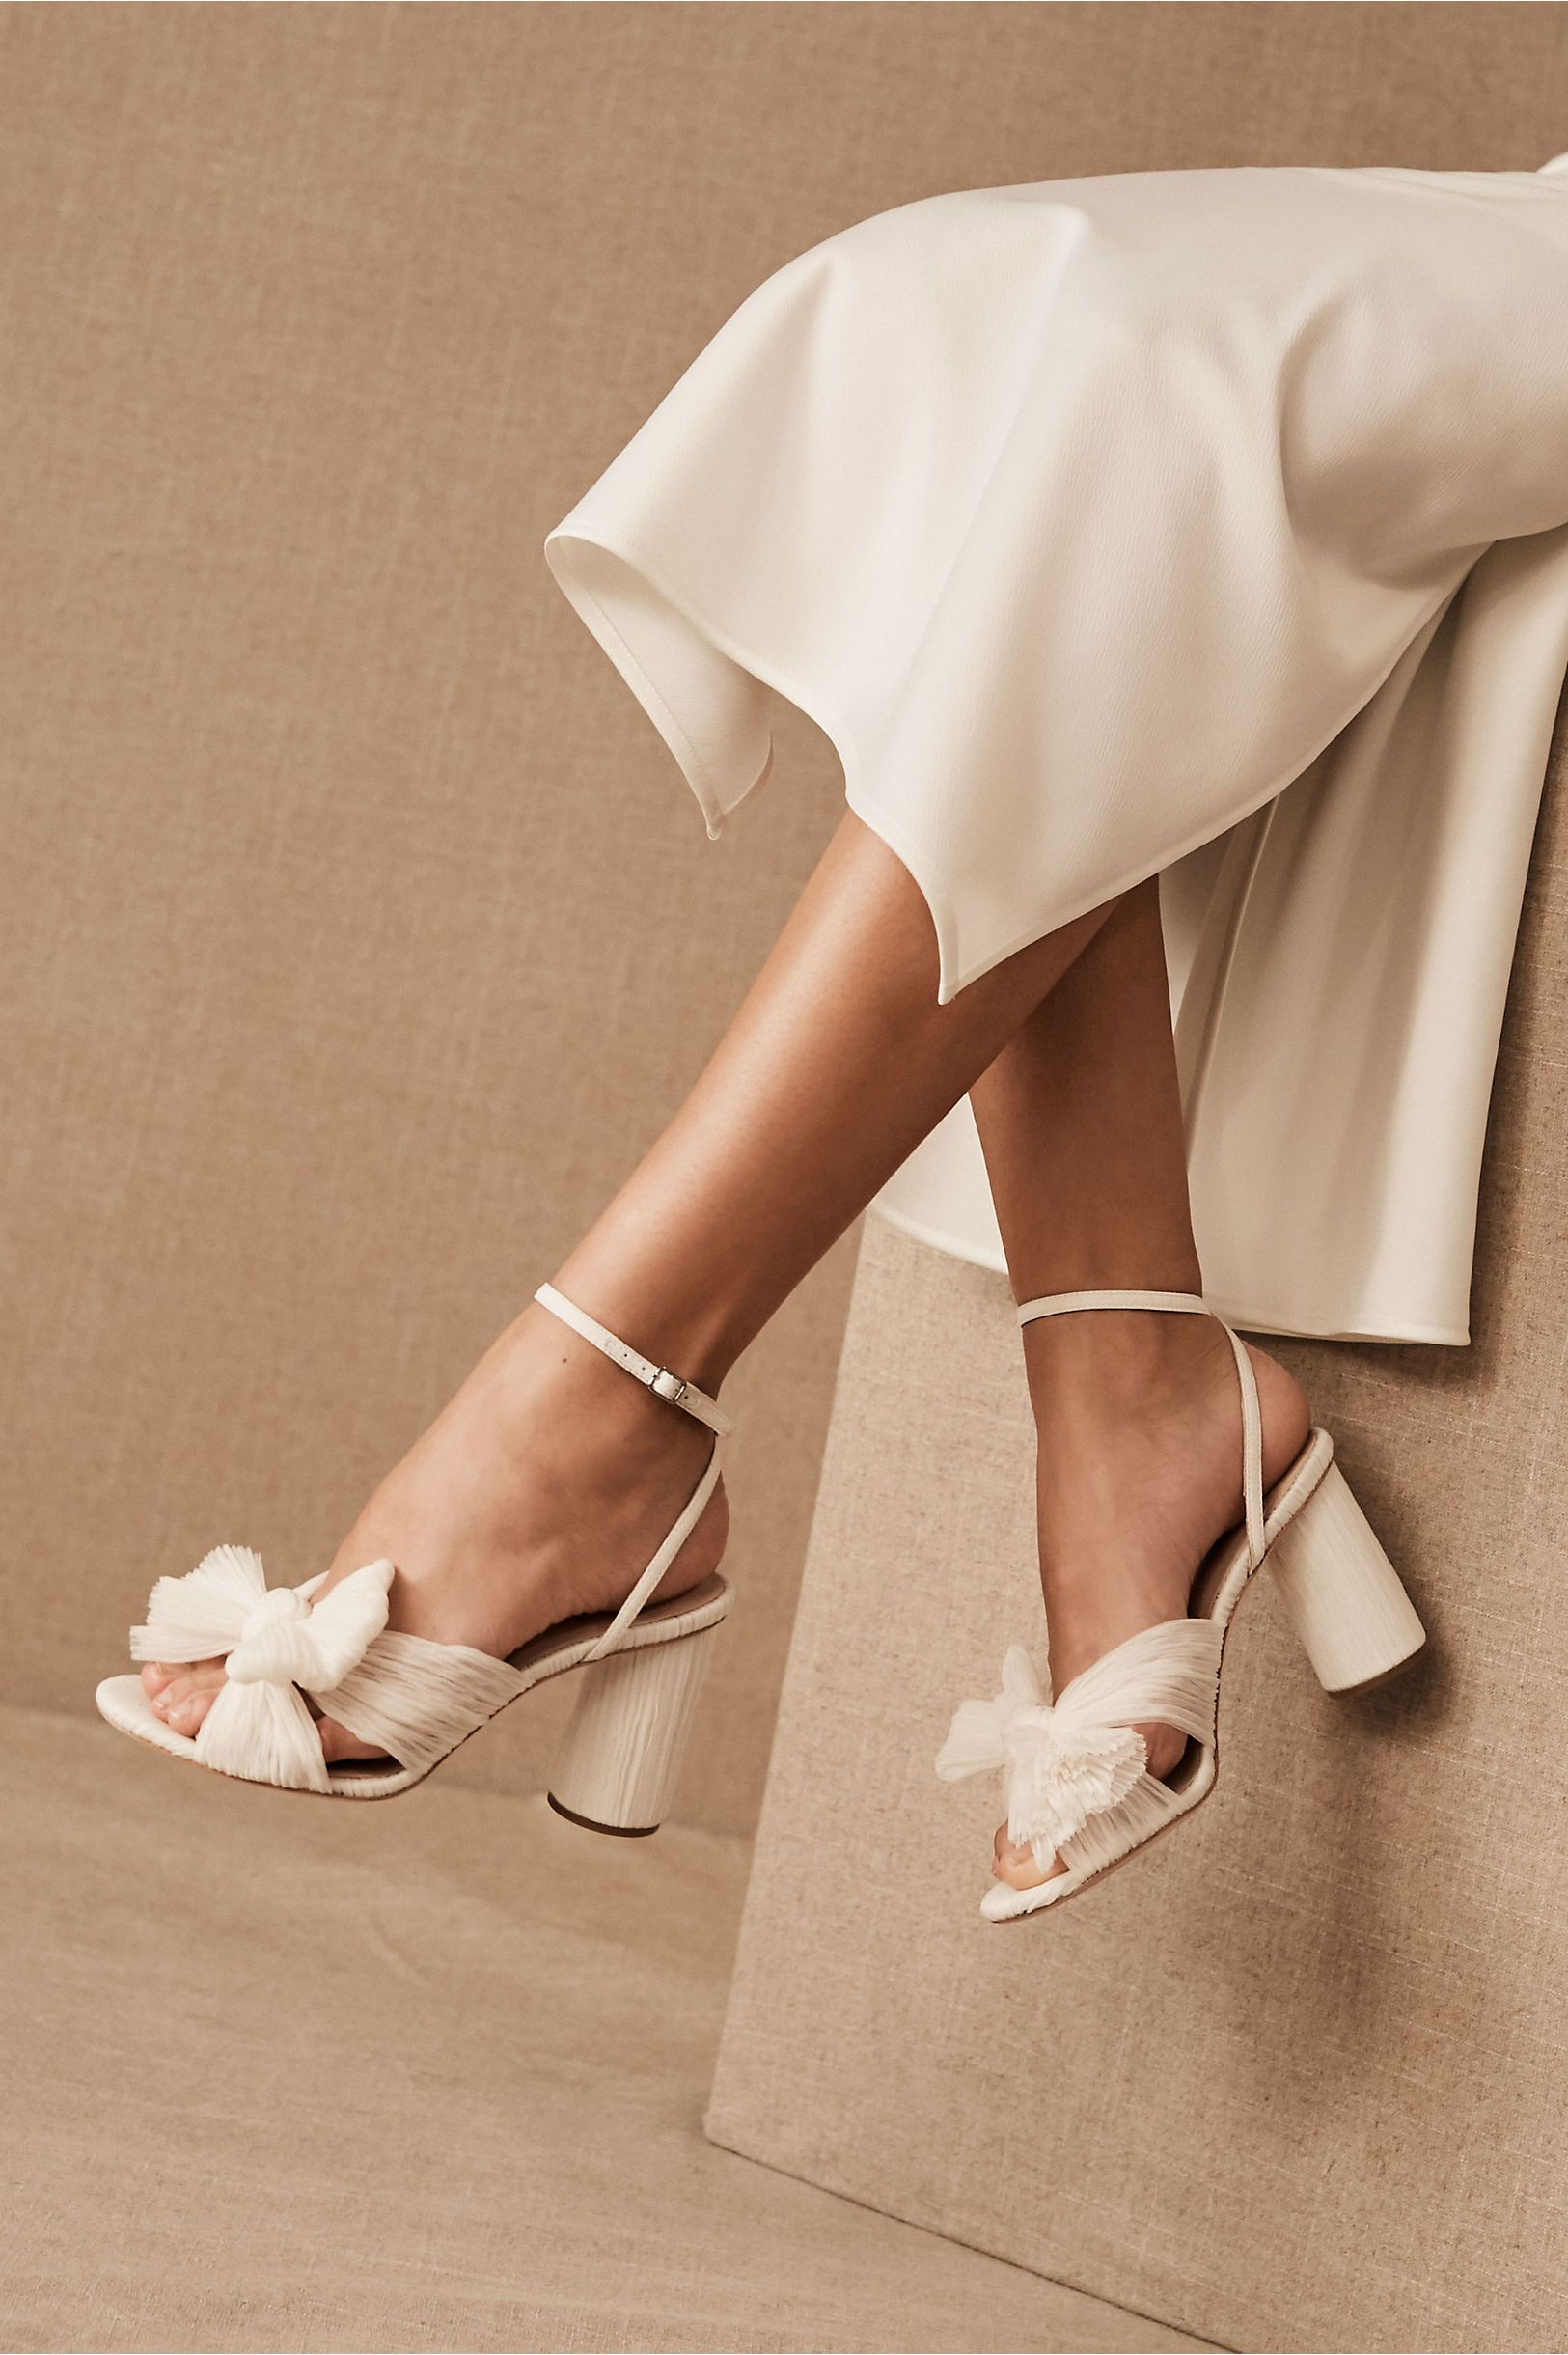 40+ Pearl wedding shoes size 6 ideas in 2021